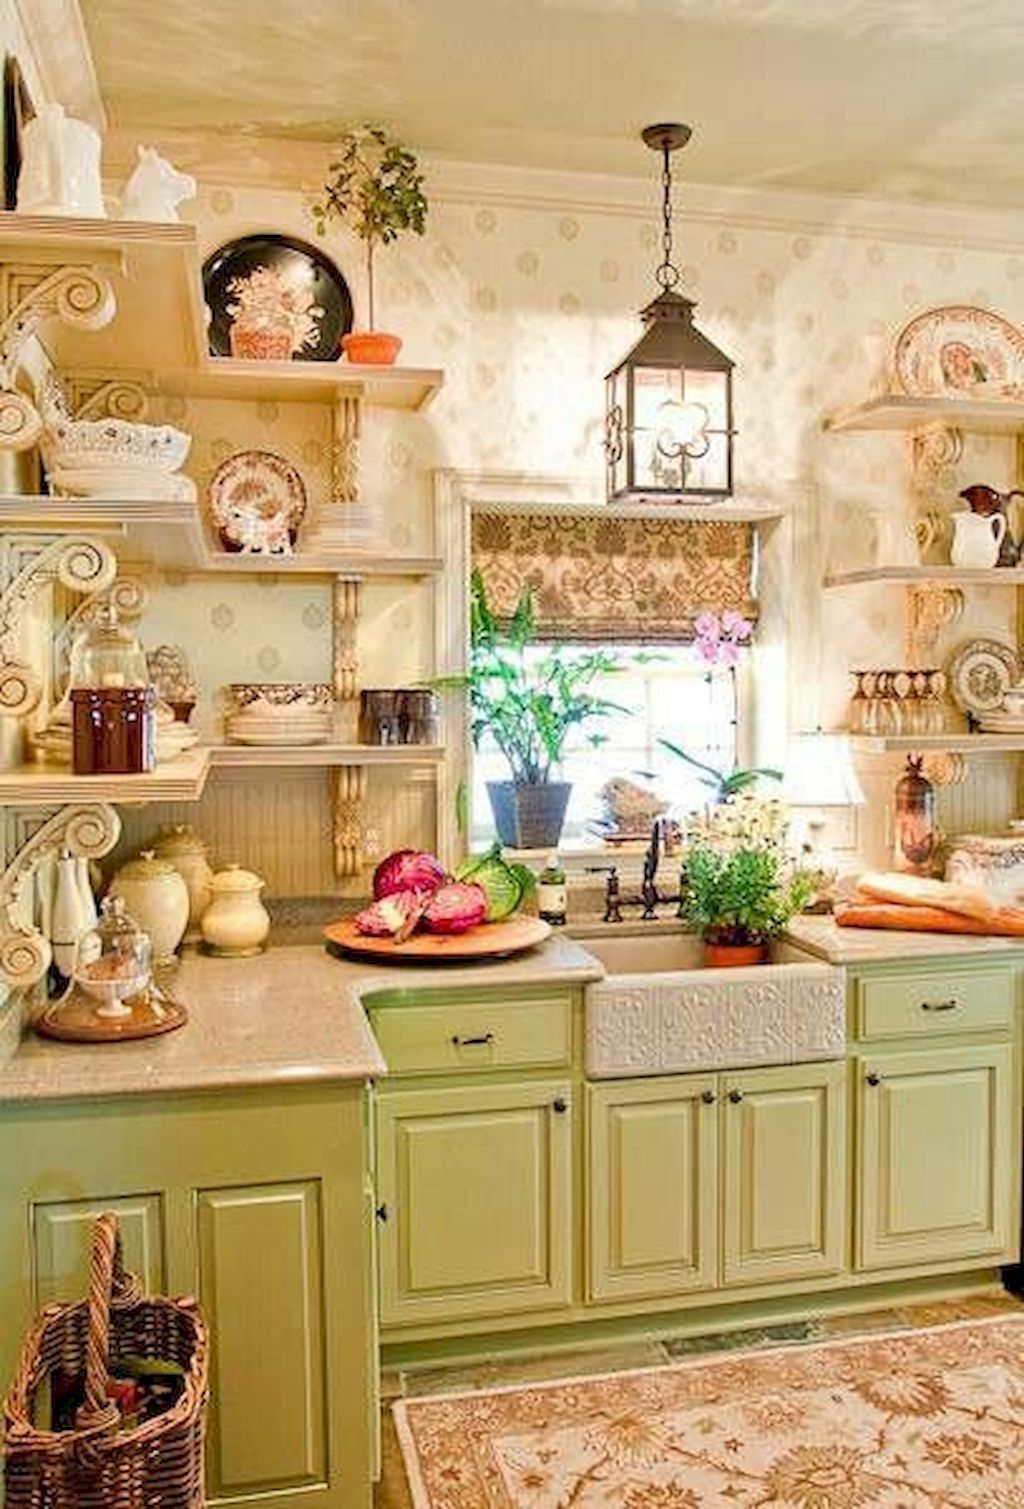 80 beautiful french country kitchen design ideas country kitchen graceful lines intricate woodwork and rich fabrics are characteristic of classic french design solutioingenieria